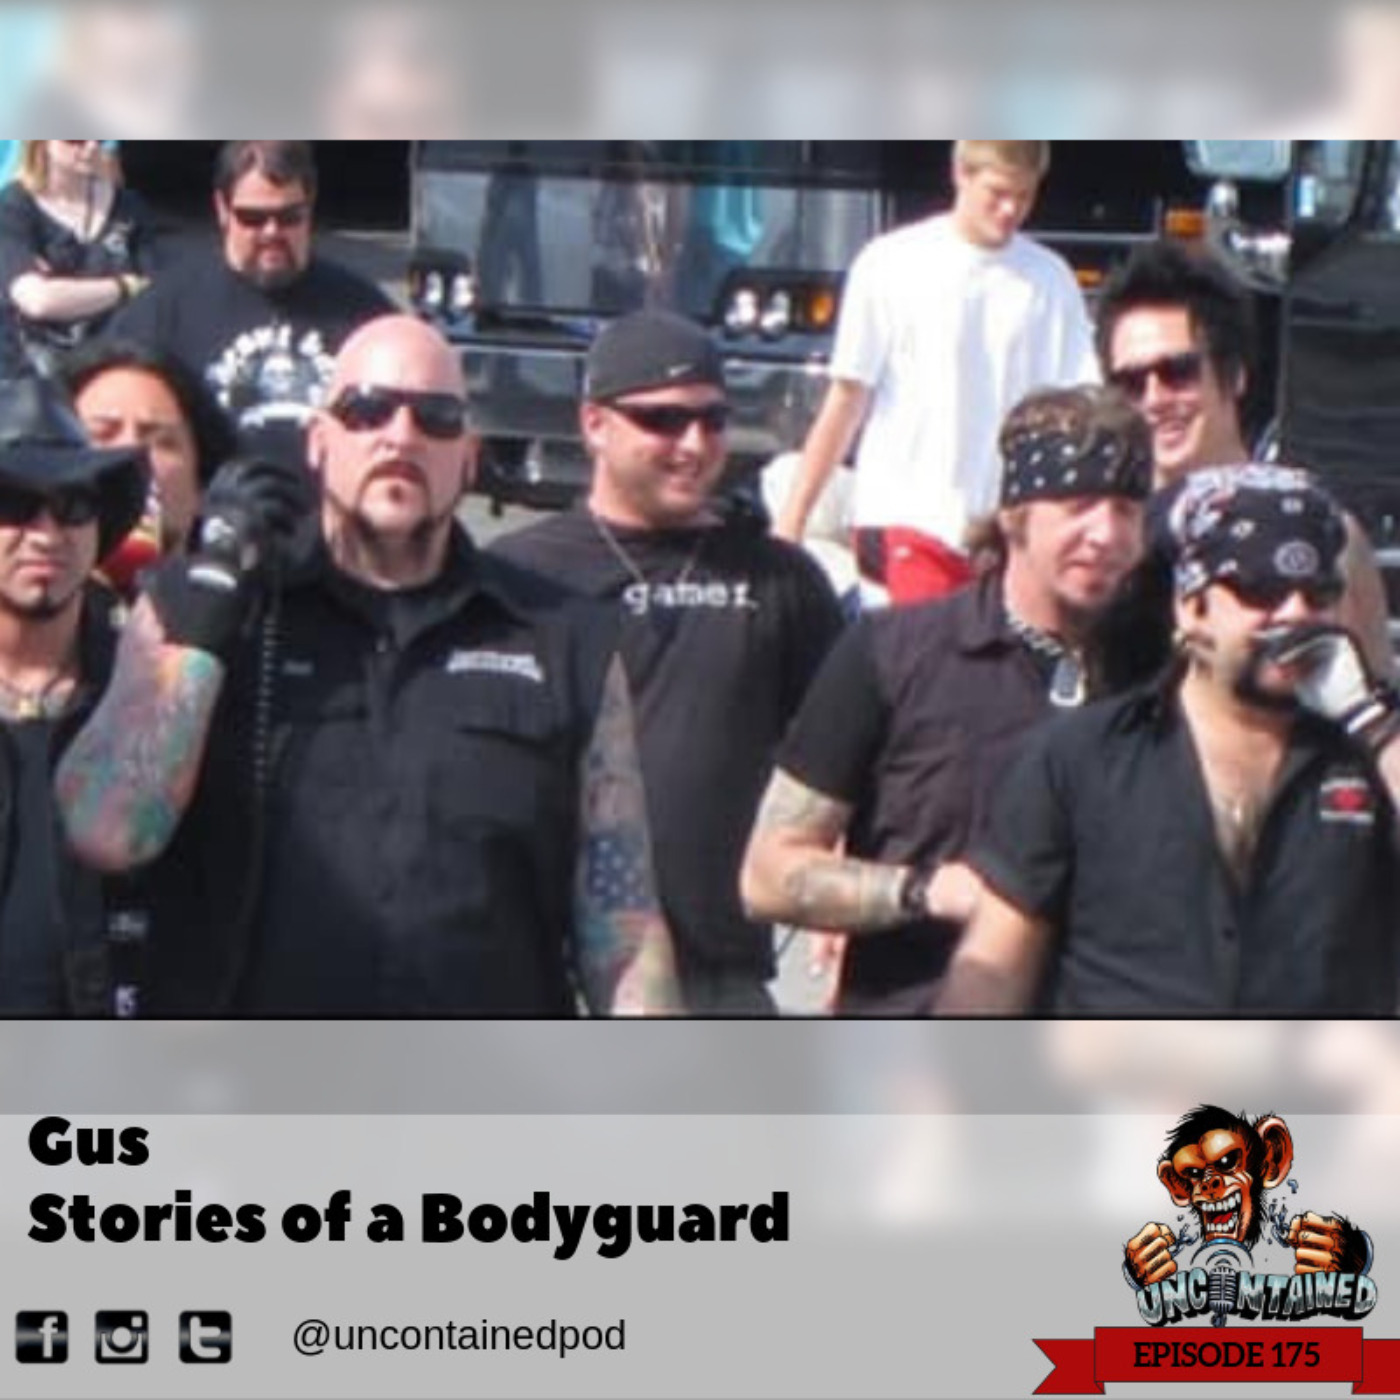 Episode 175: Gus - Stories of a Bodyguard